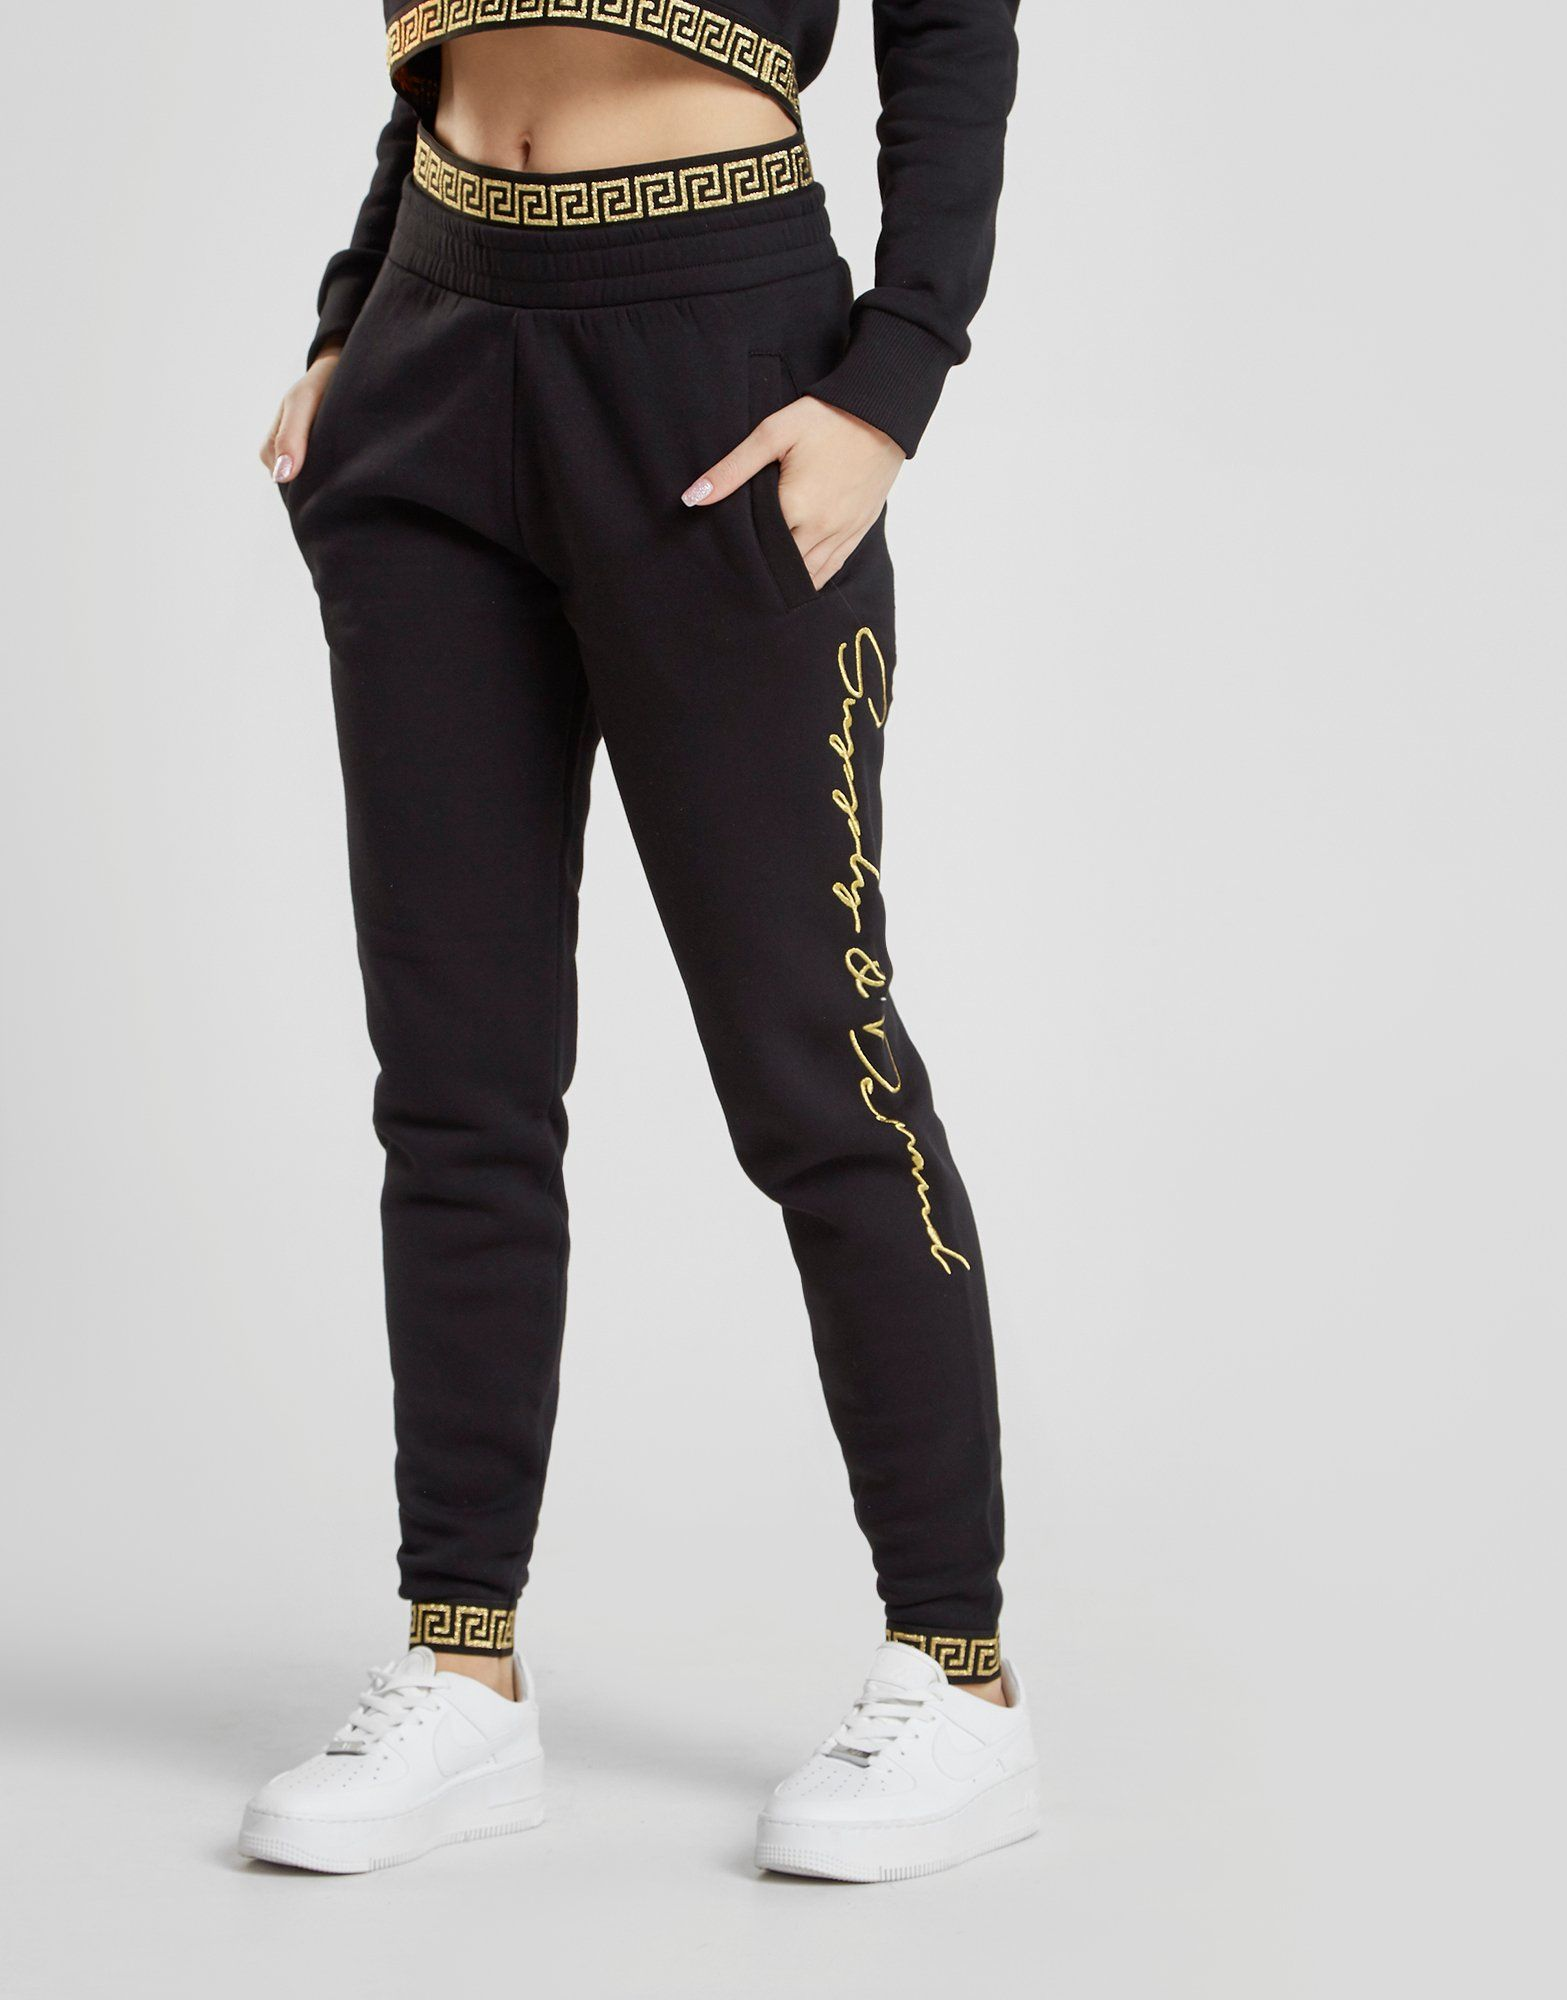 Supply & Demand Meander Joggers